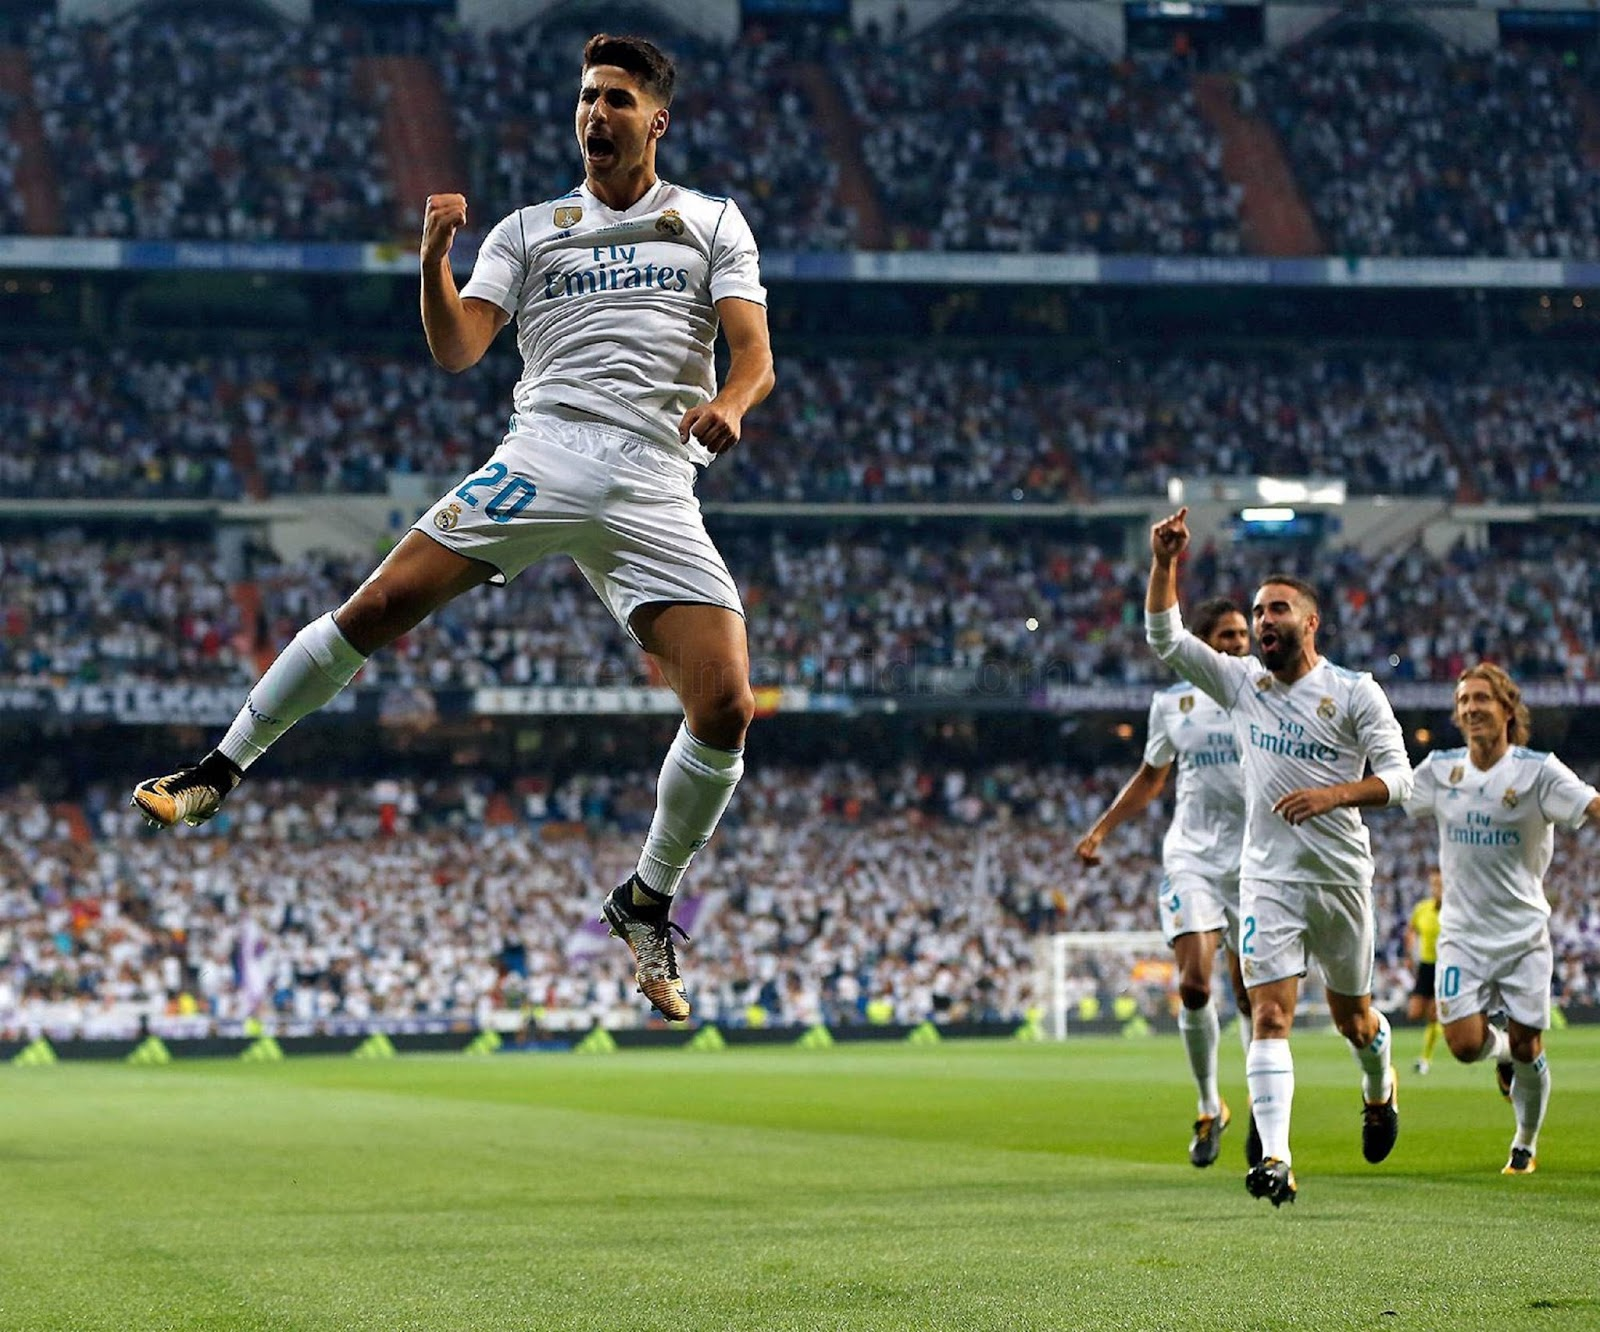 MARCO ASENSIO 5